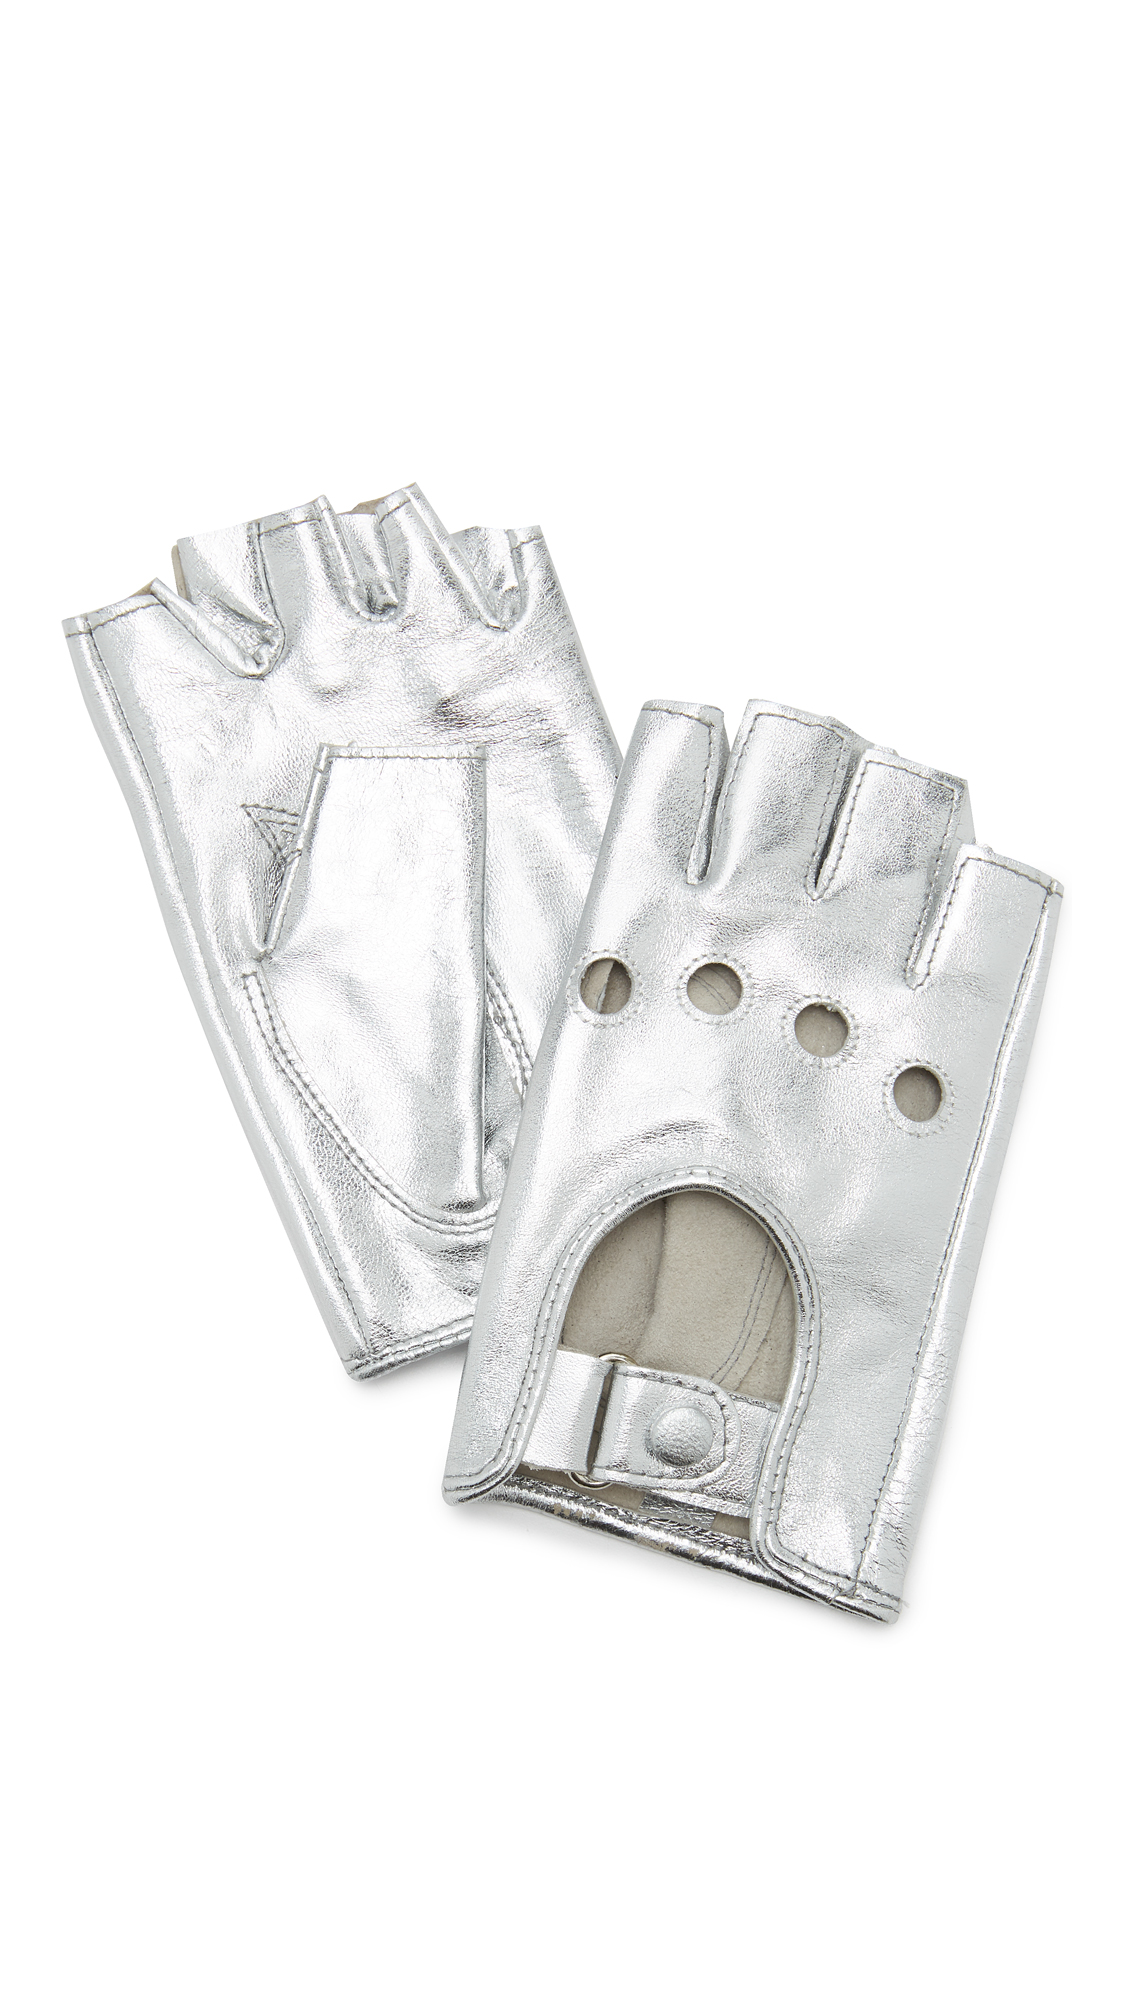 Carolina Amato Metallic Fingerless Moto Gloves - Silver